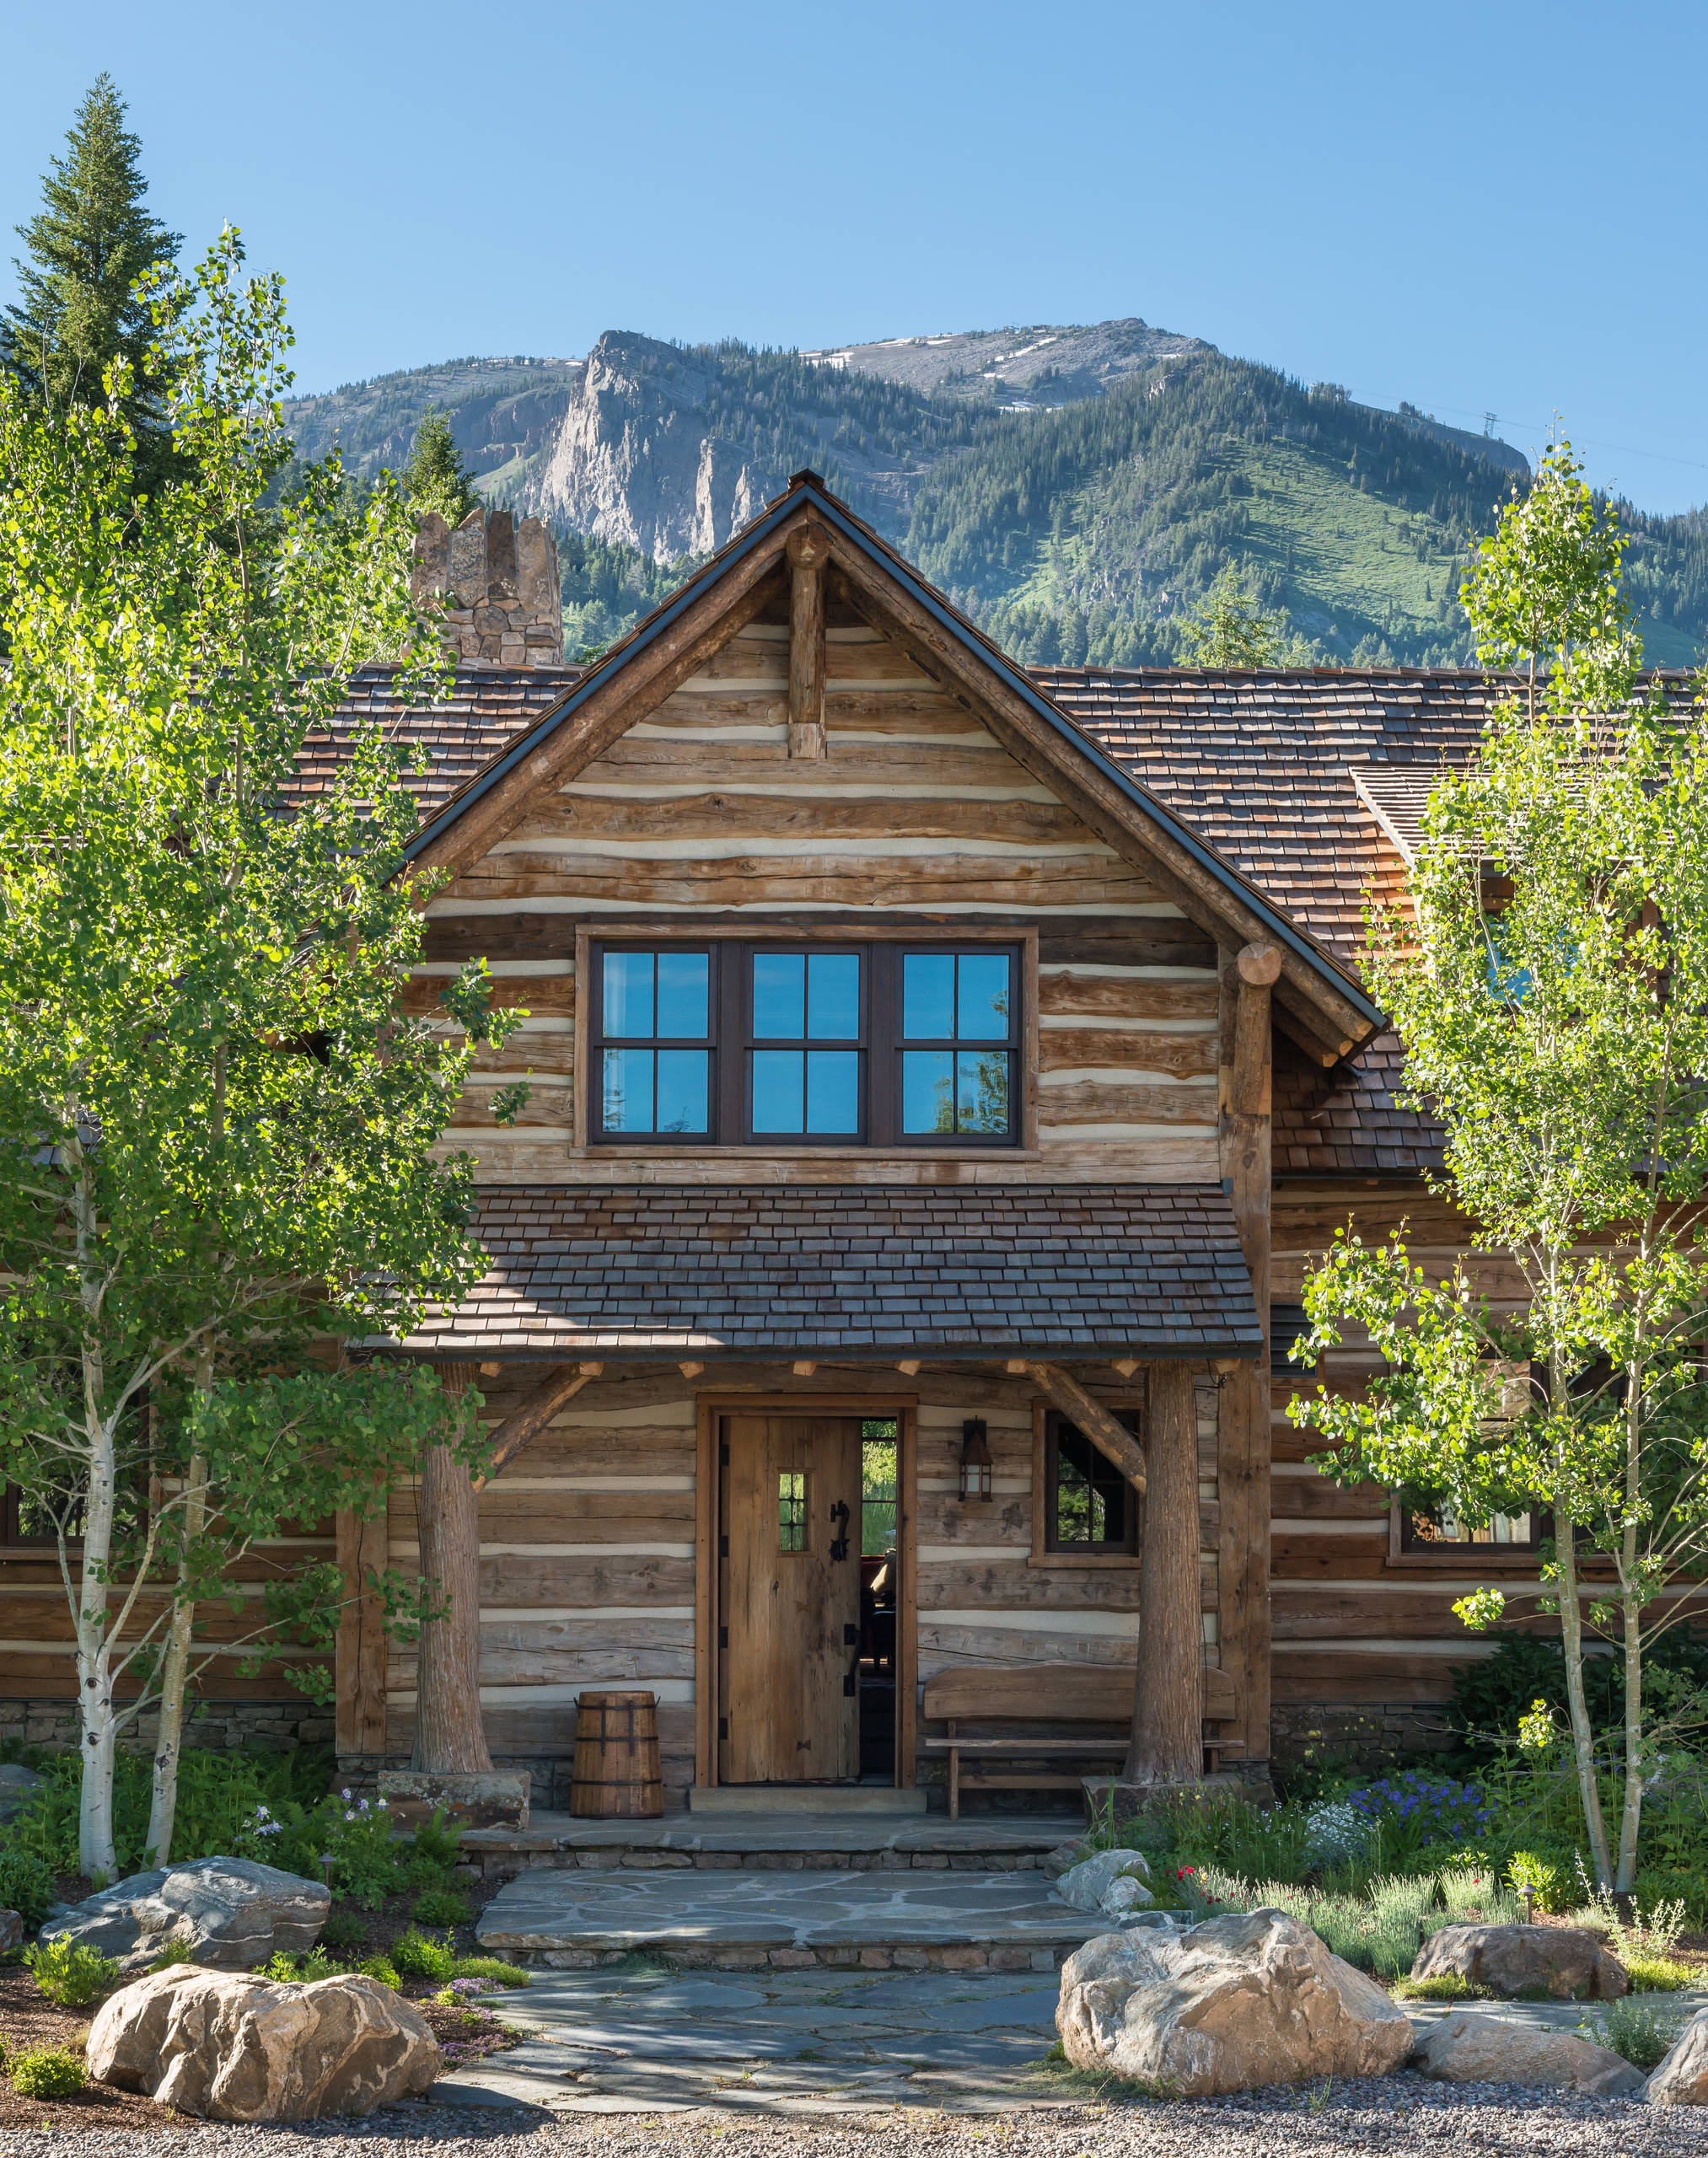 Endearing 15 Spectacular Rustic Exterior Designs That You Must See 1 Rustic Elegance Home Exterior Rustic Home Exterior Photos home decor Rustic Home Exterior